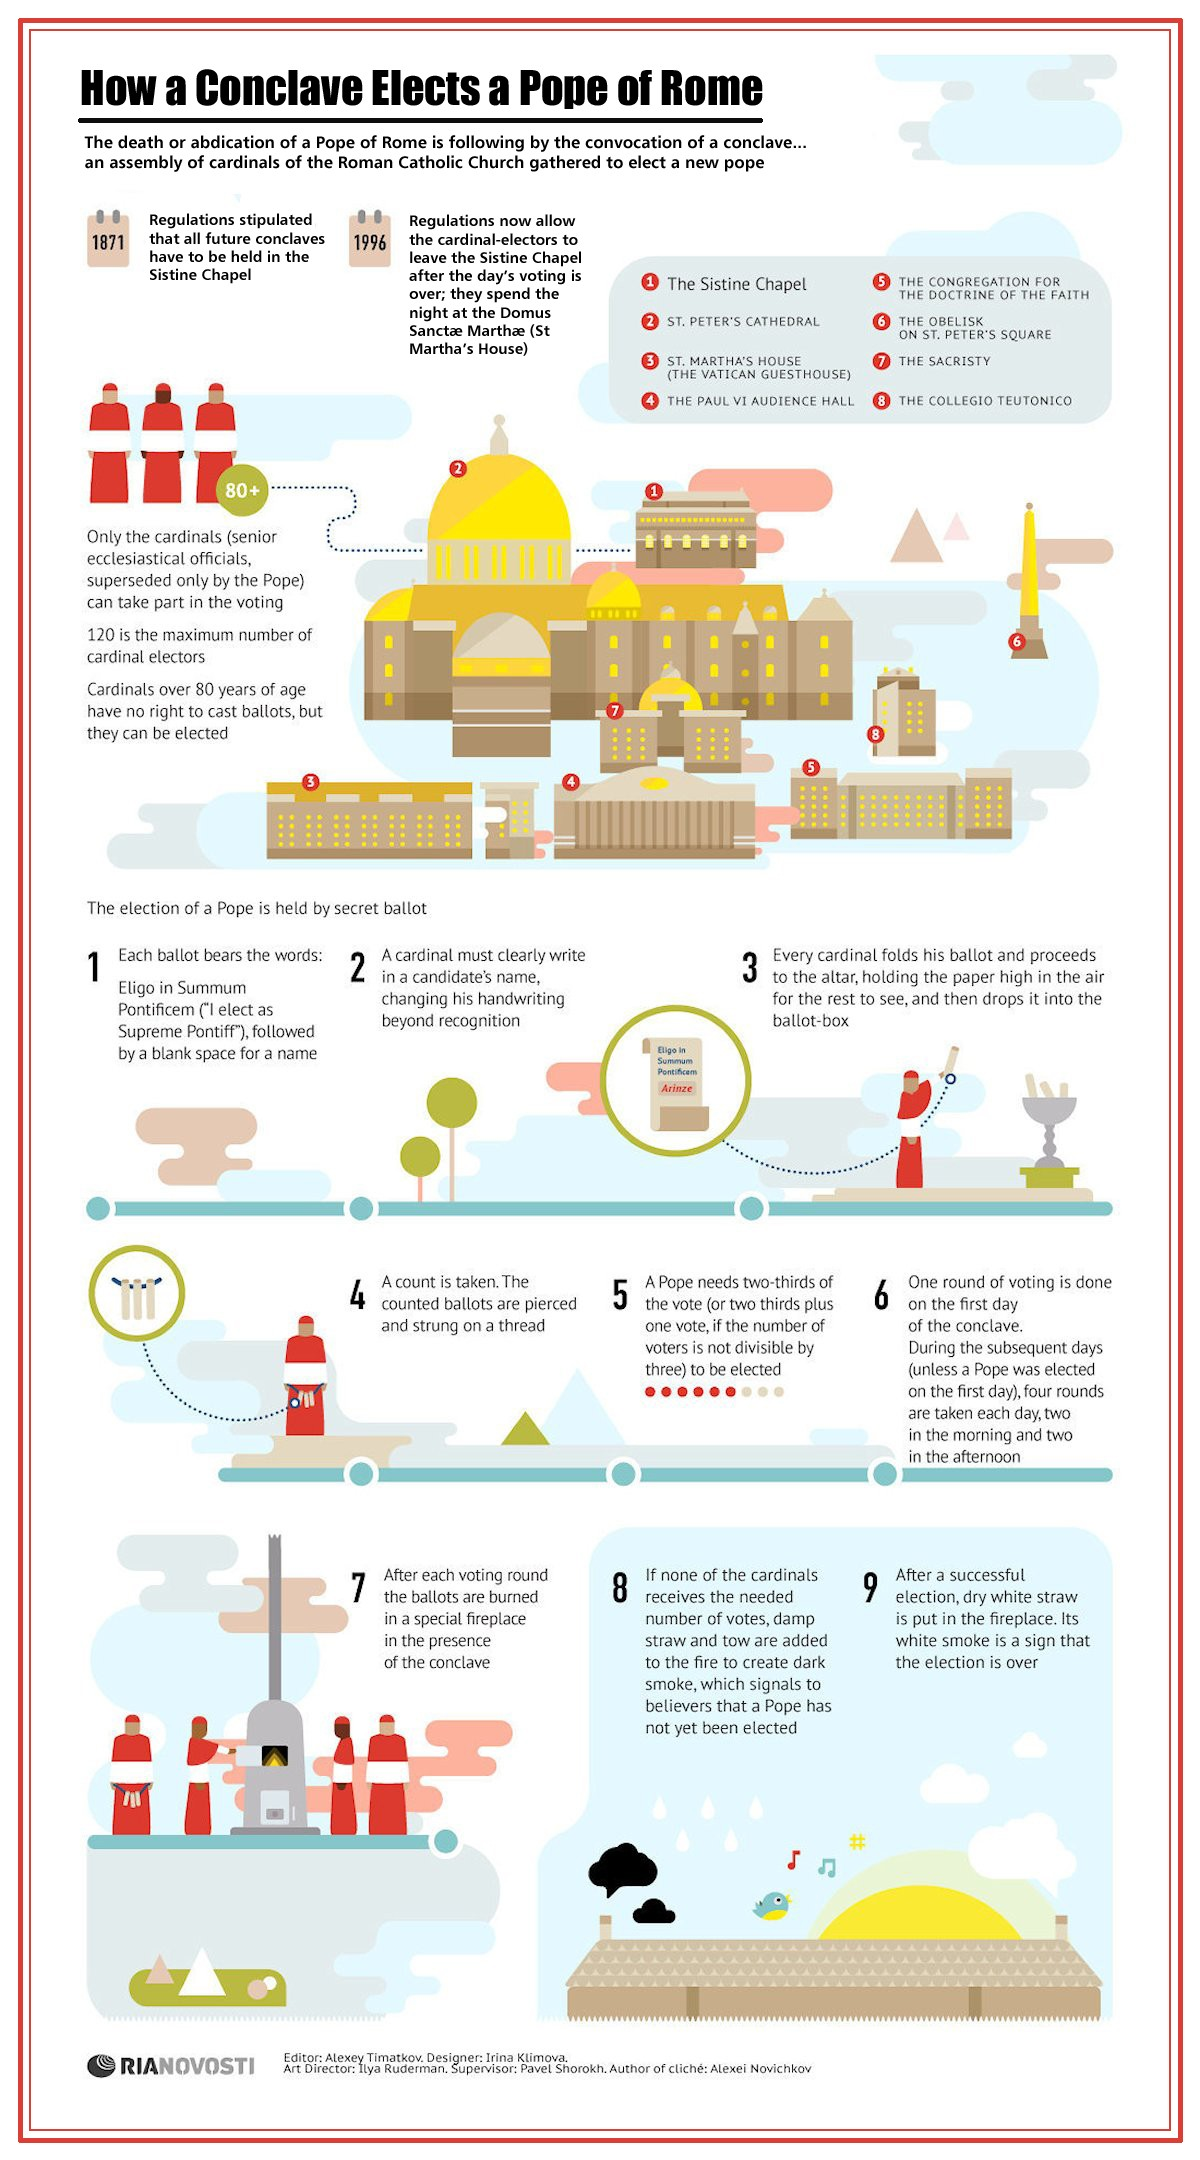 00 RIA-Novosti Infographics. How a Conclave Elects a Pope of Rome. 2013